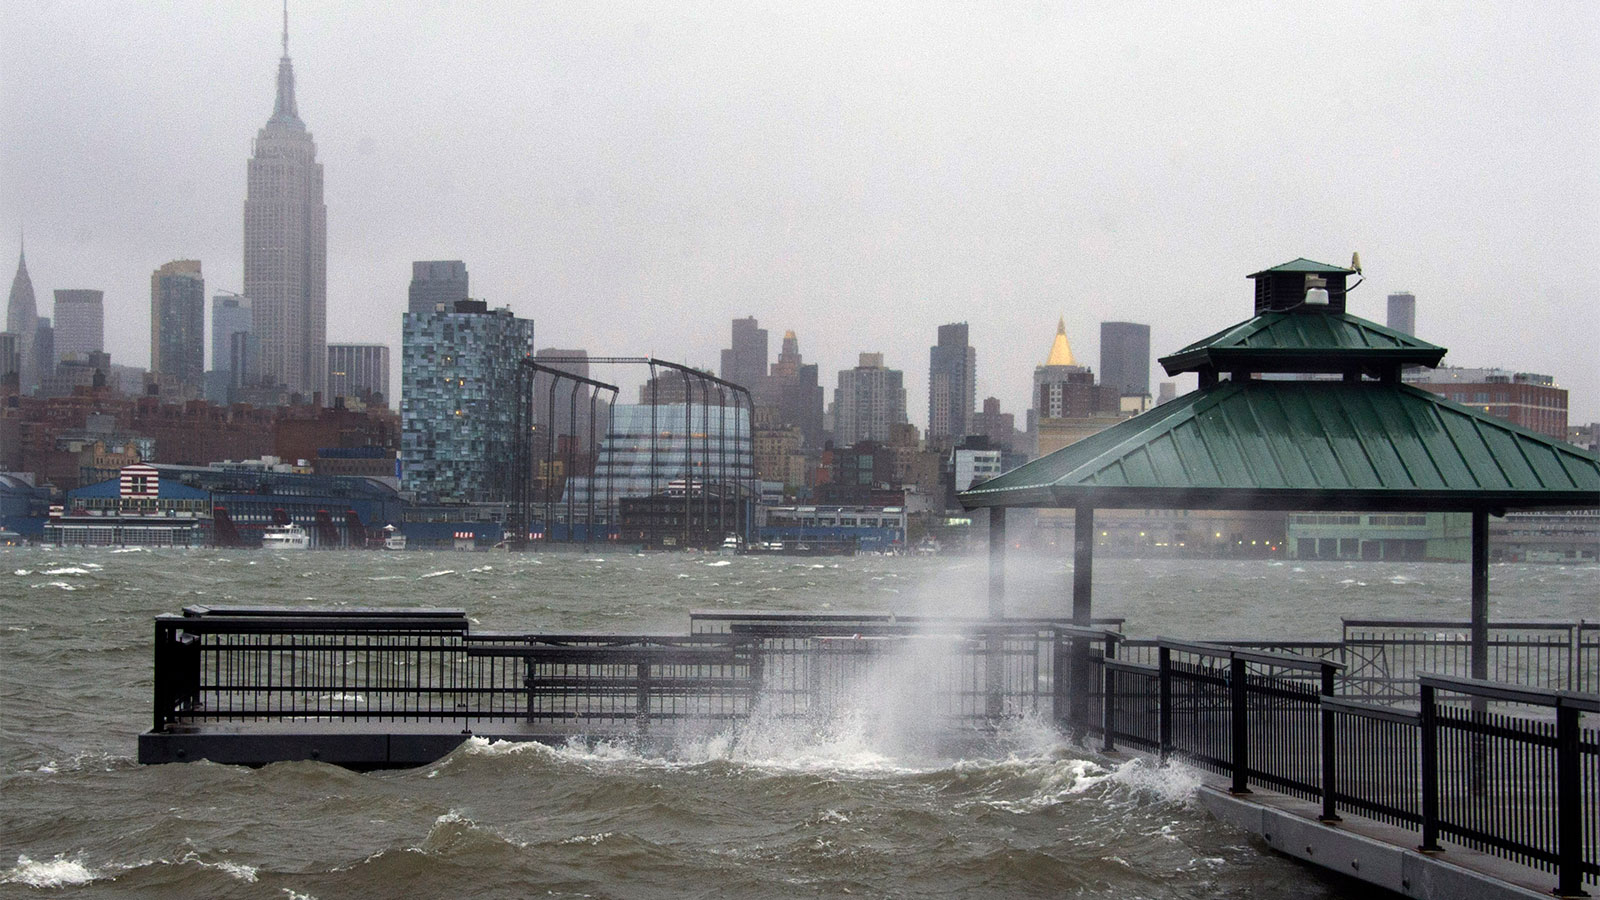 Photograph of the skyline of New York City and the Hudson River as Hurricane Sandy approaches